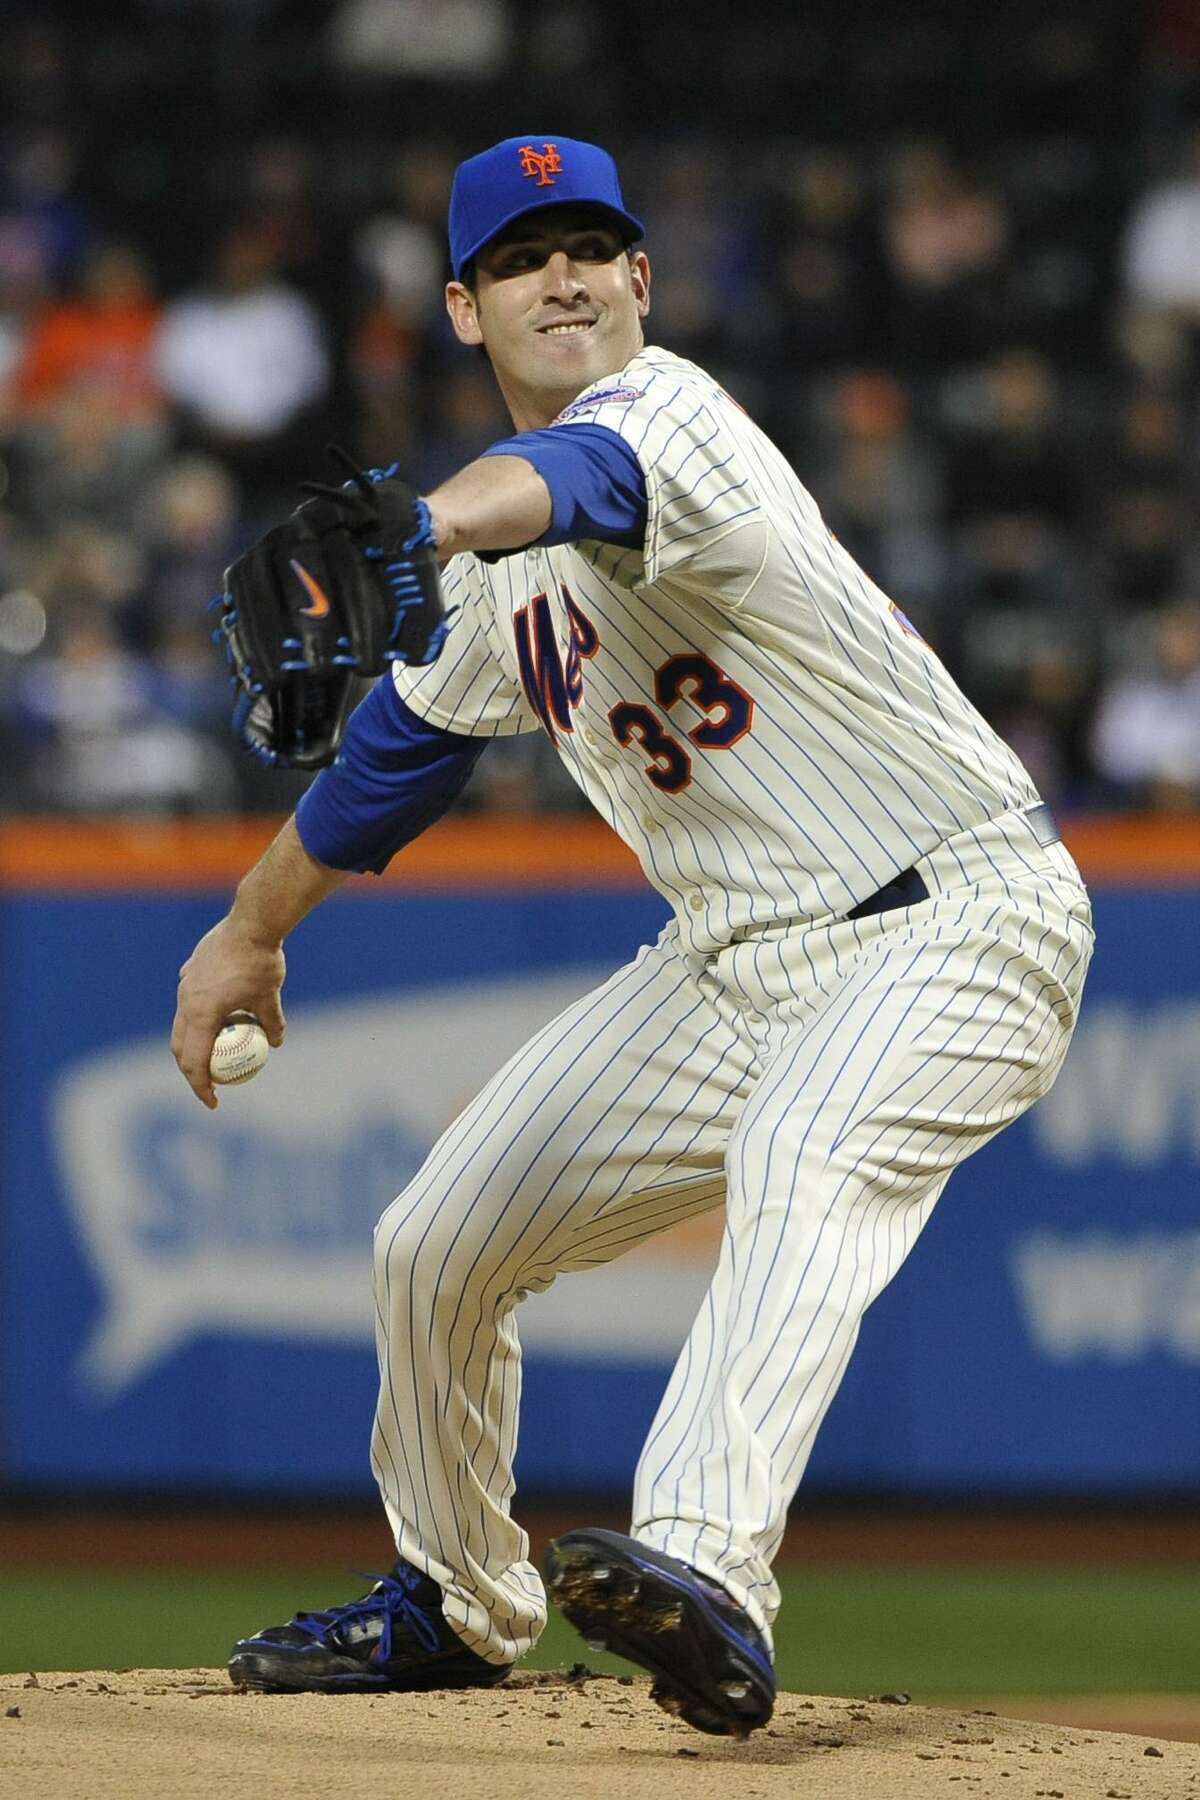 New York Mets starting pitcher Matt Harvey (33) throws against the Washington Nationals in the first inning of a baseball game at Citi Field, Friday, April 19, 2013 in New York. (AP Photo/Kathy Kmonicek)